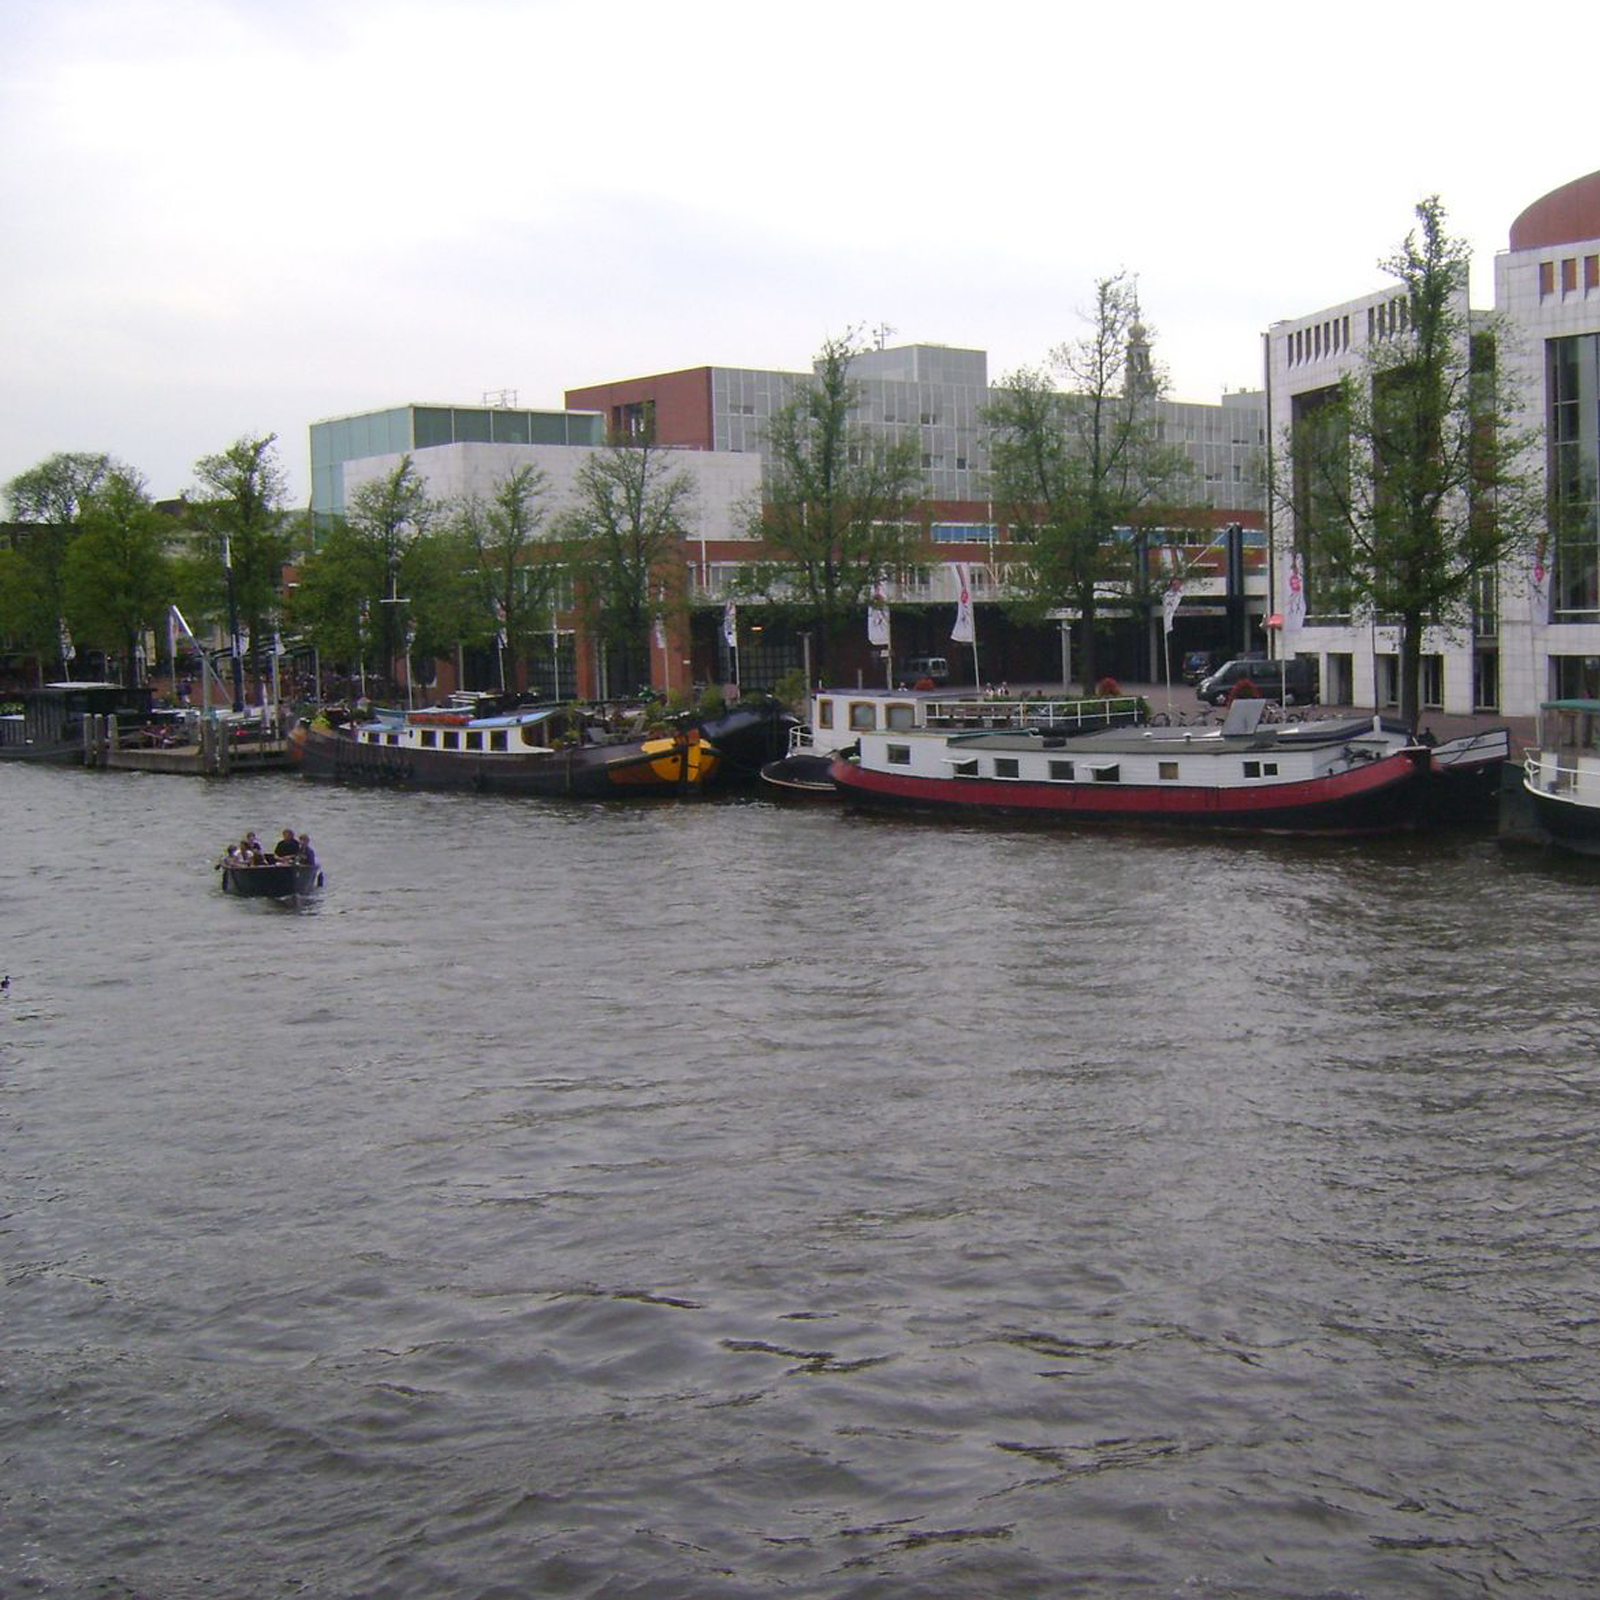 destinos-gay-friendly-amsterdam